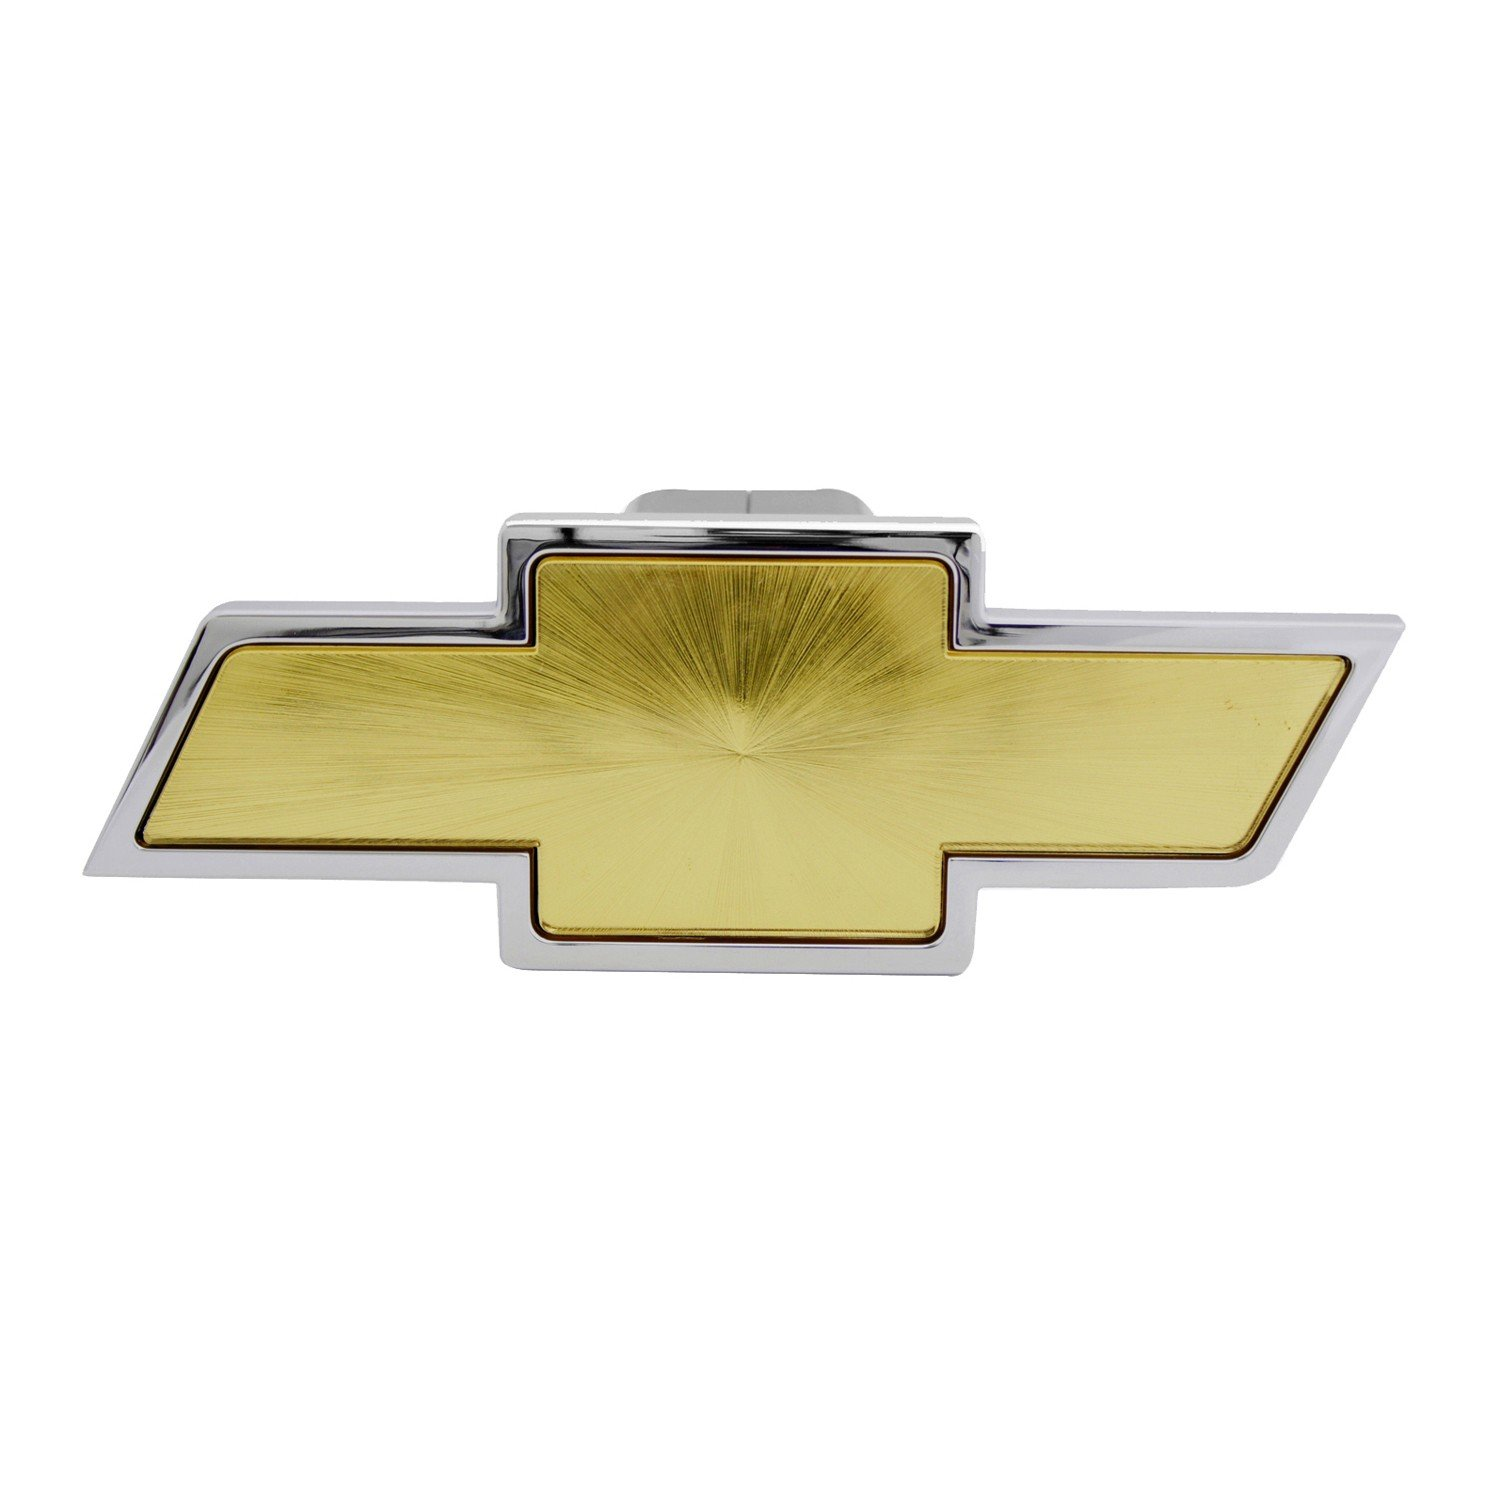 Trailer Hitch Receiver Cover, 2 Trailer Chevy Truck Cover Hitch 2in And 1-1/4in by Super Automotive